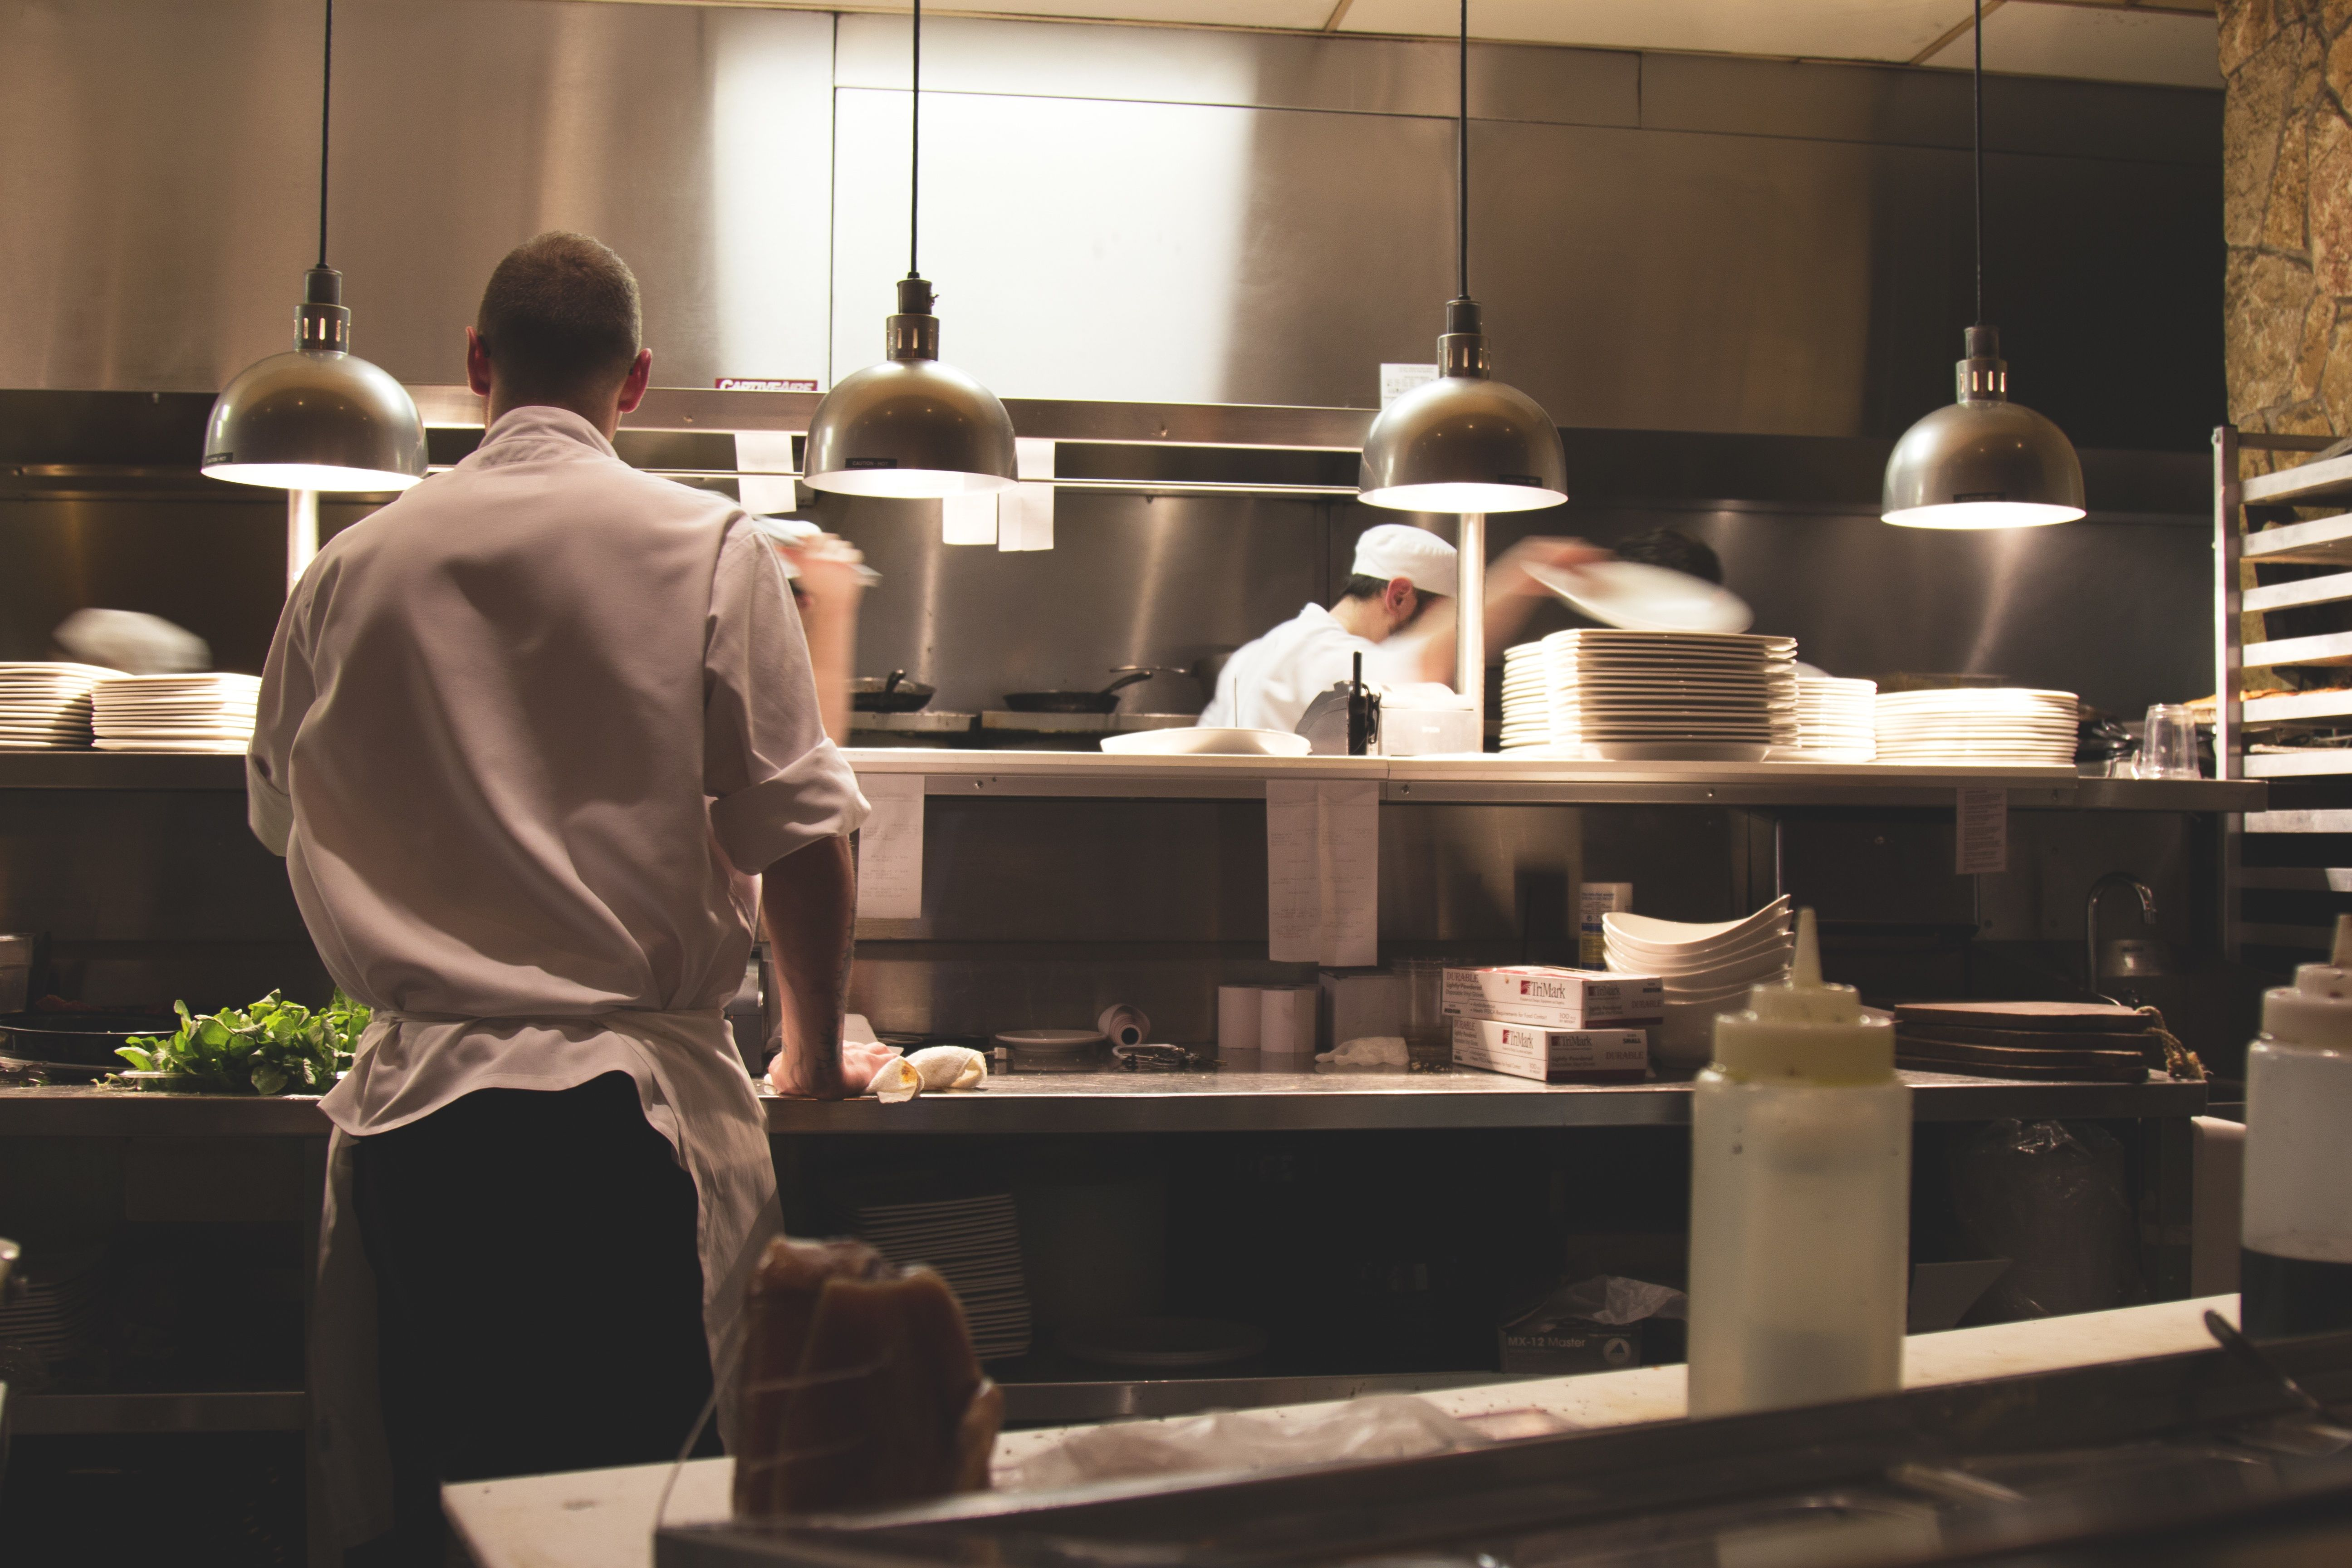 Restaurant Kitchen Photography contemporary restaurant kitchen photography emilia jane next